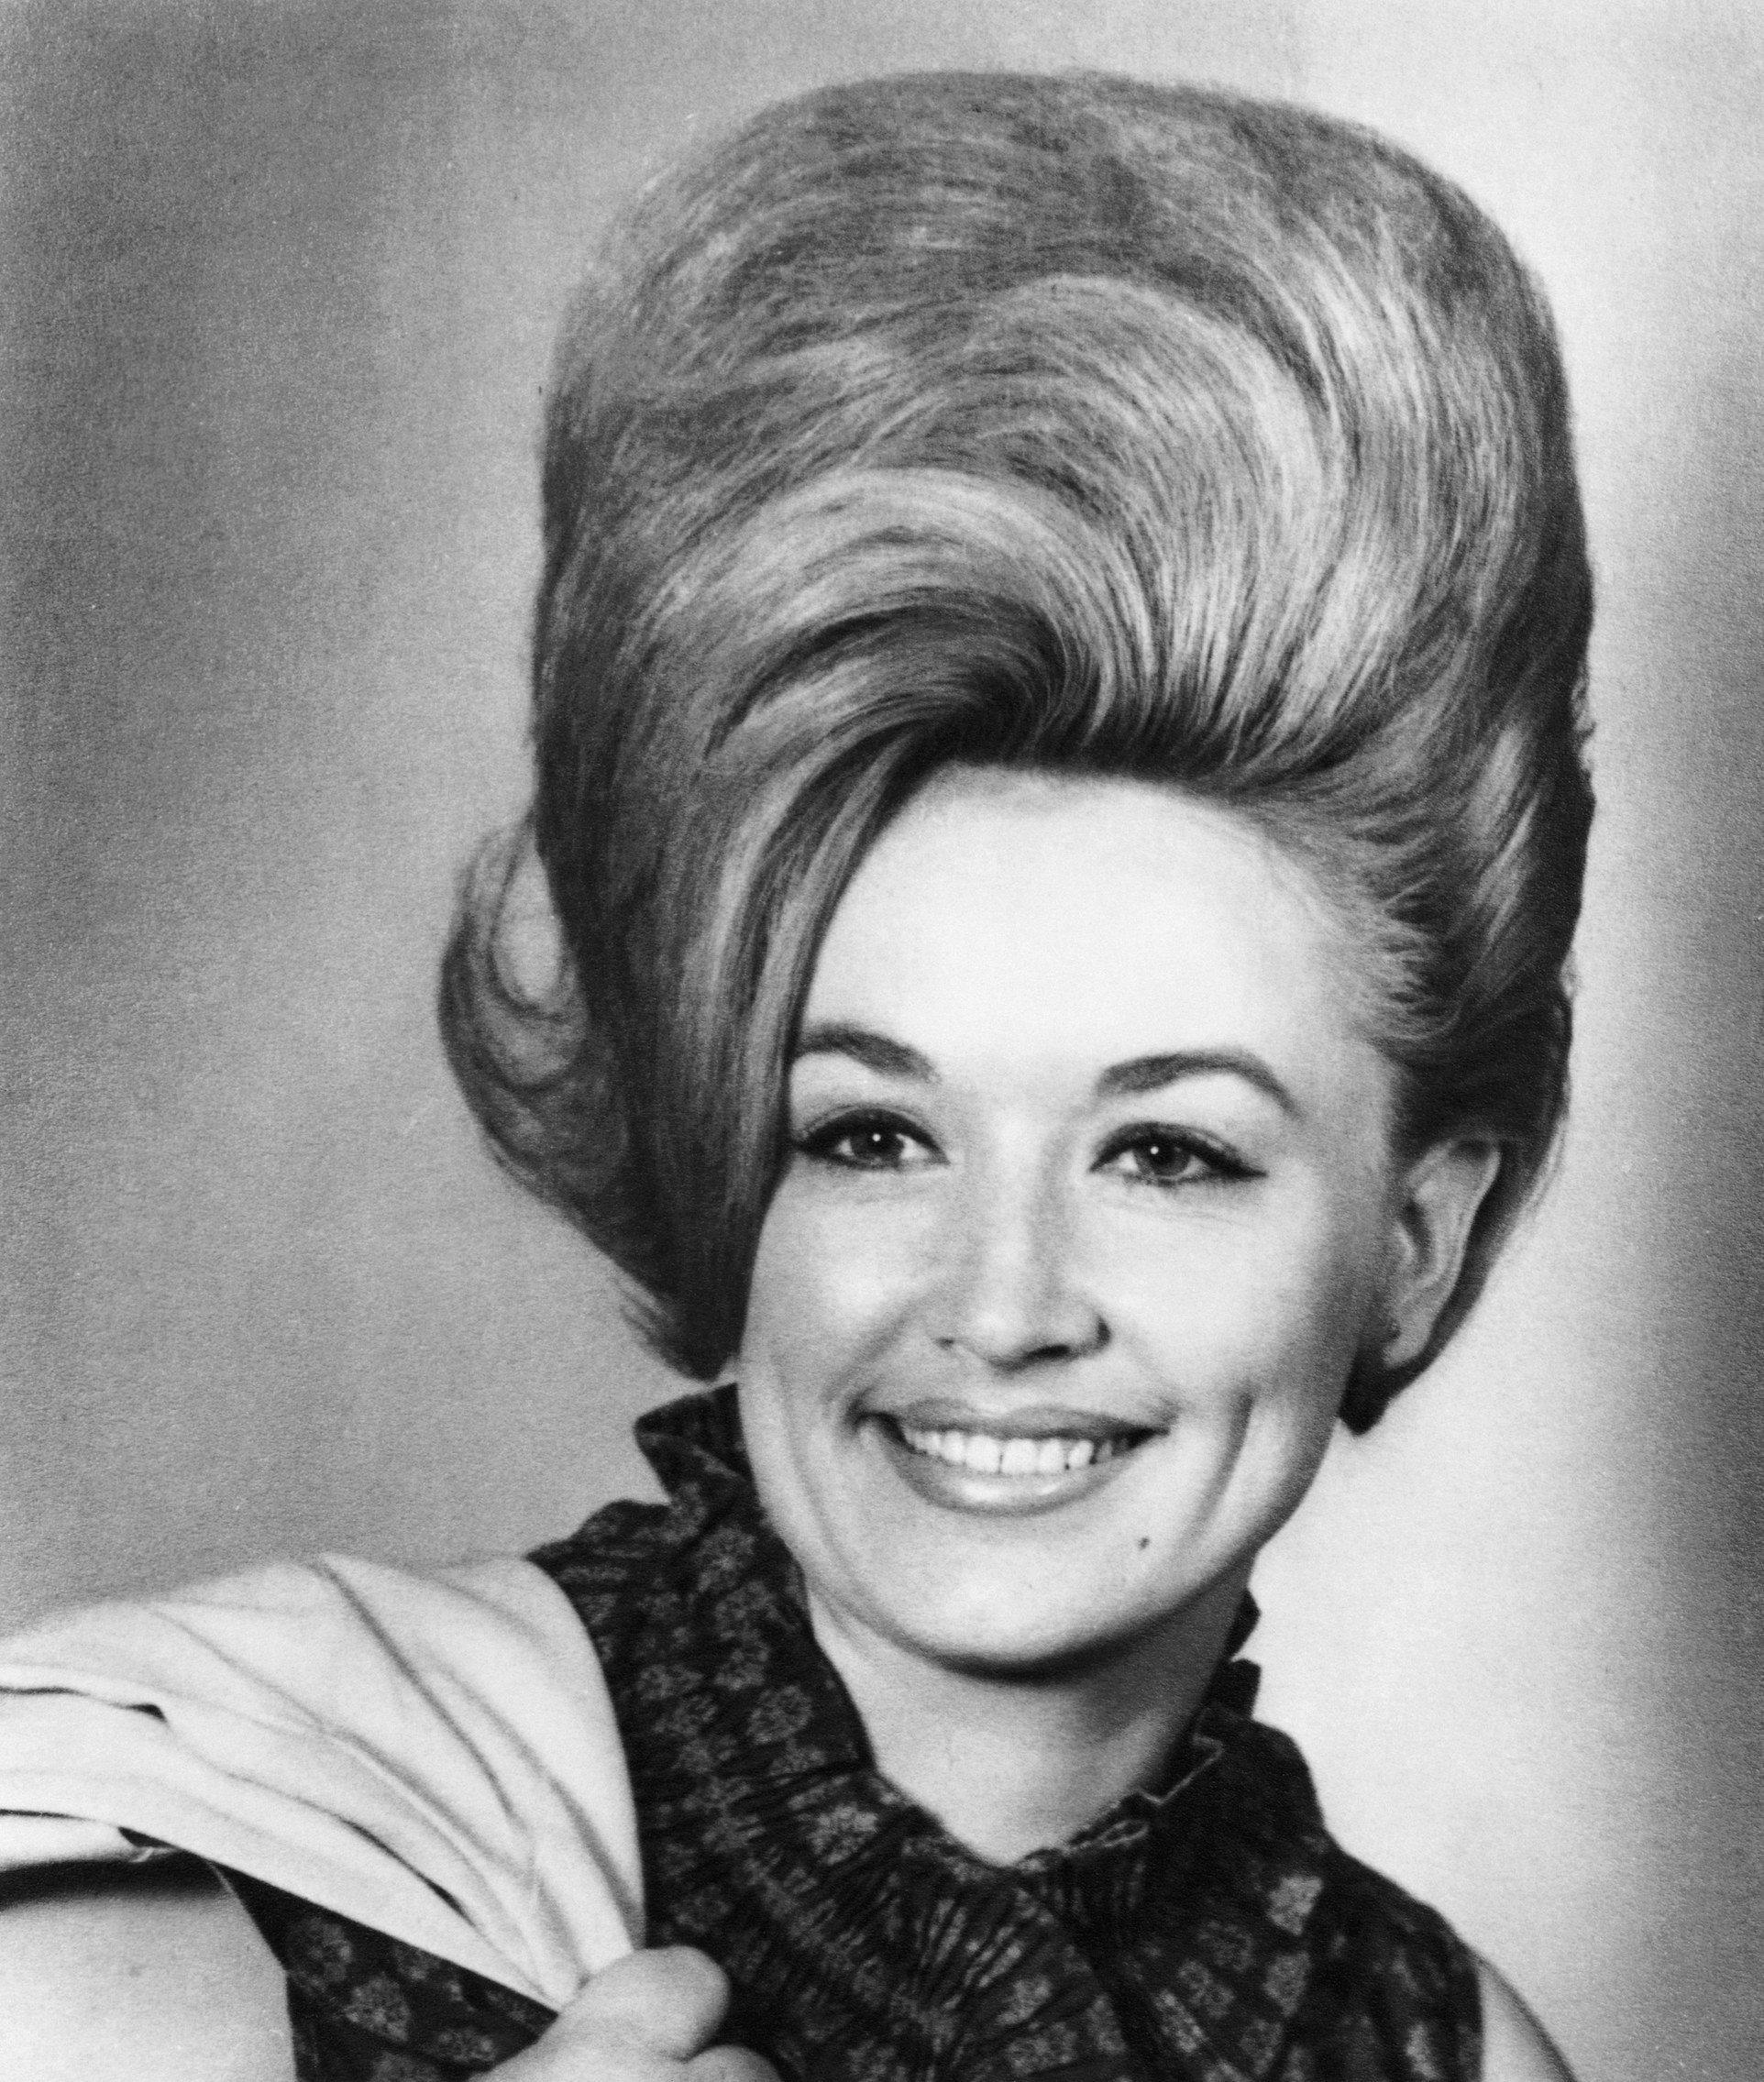 Dolly with big a beehive hairstyle